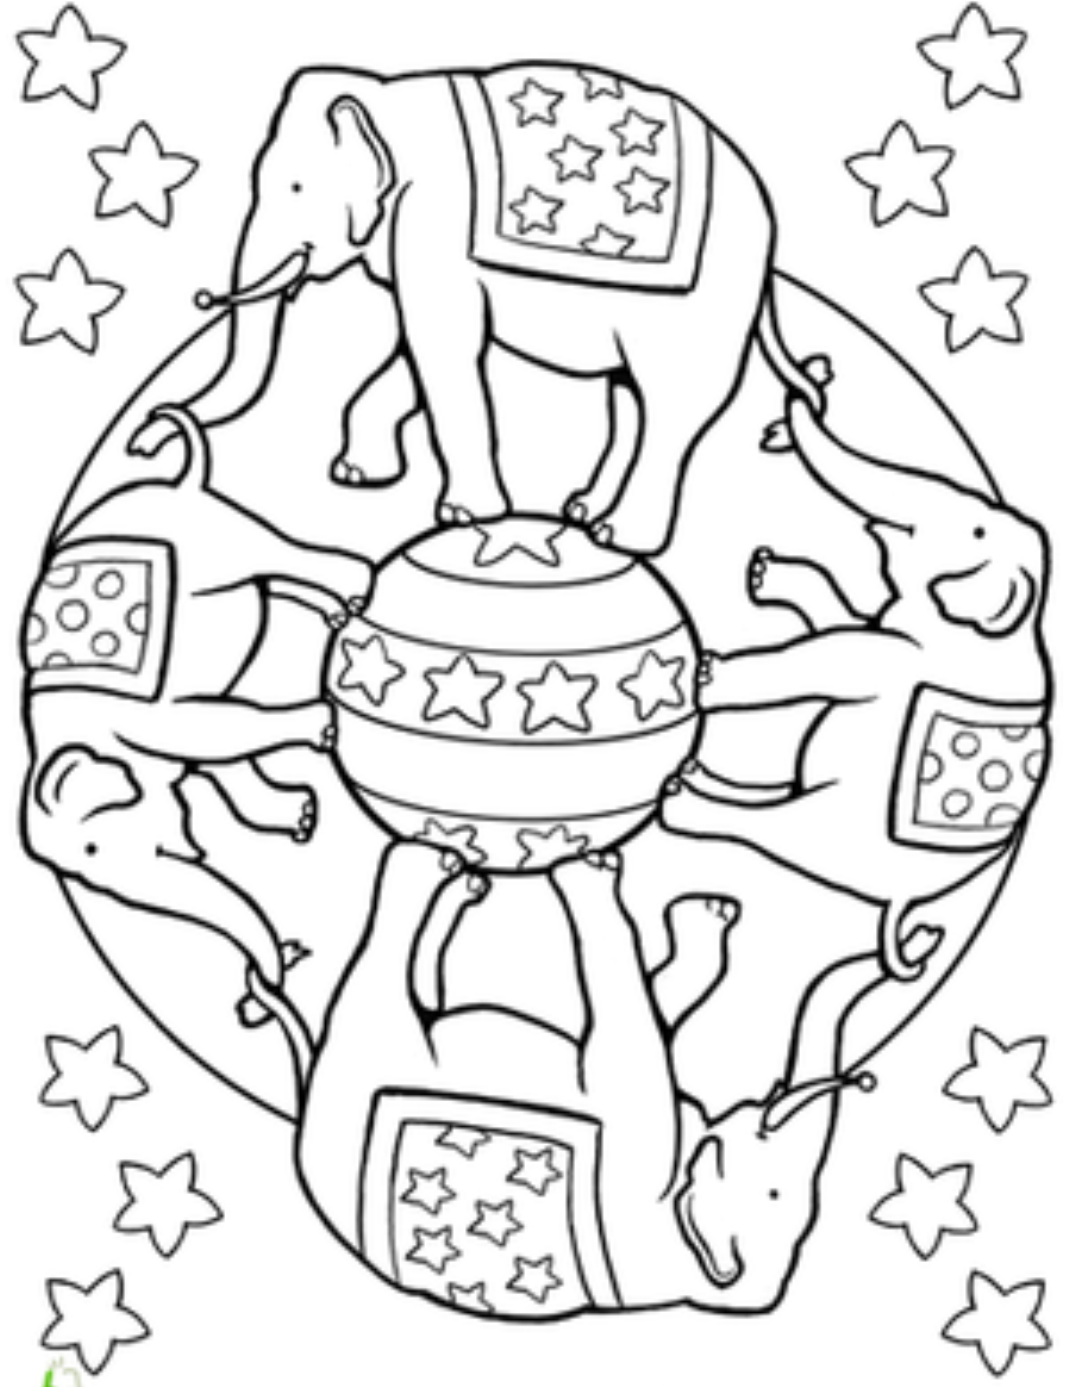 Free Printable Elephant Circus Coloring Pages